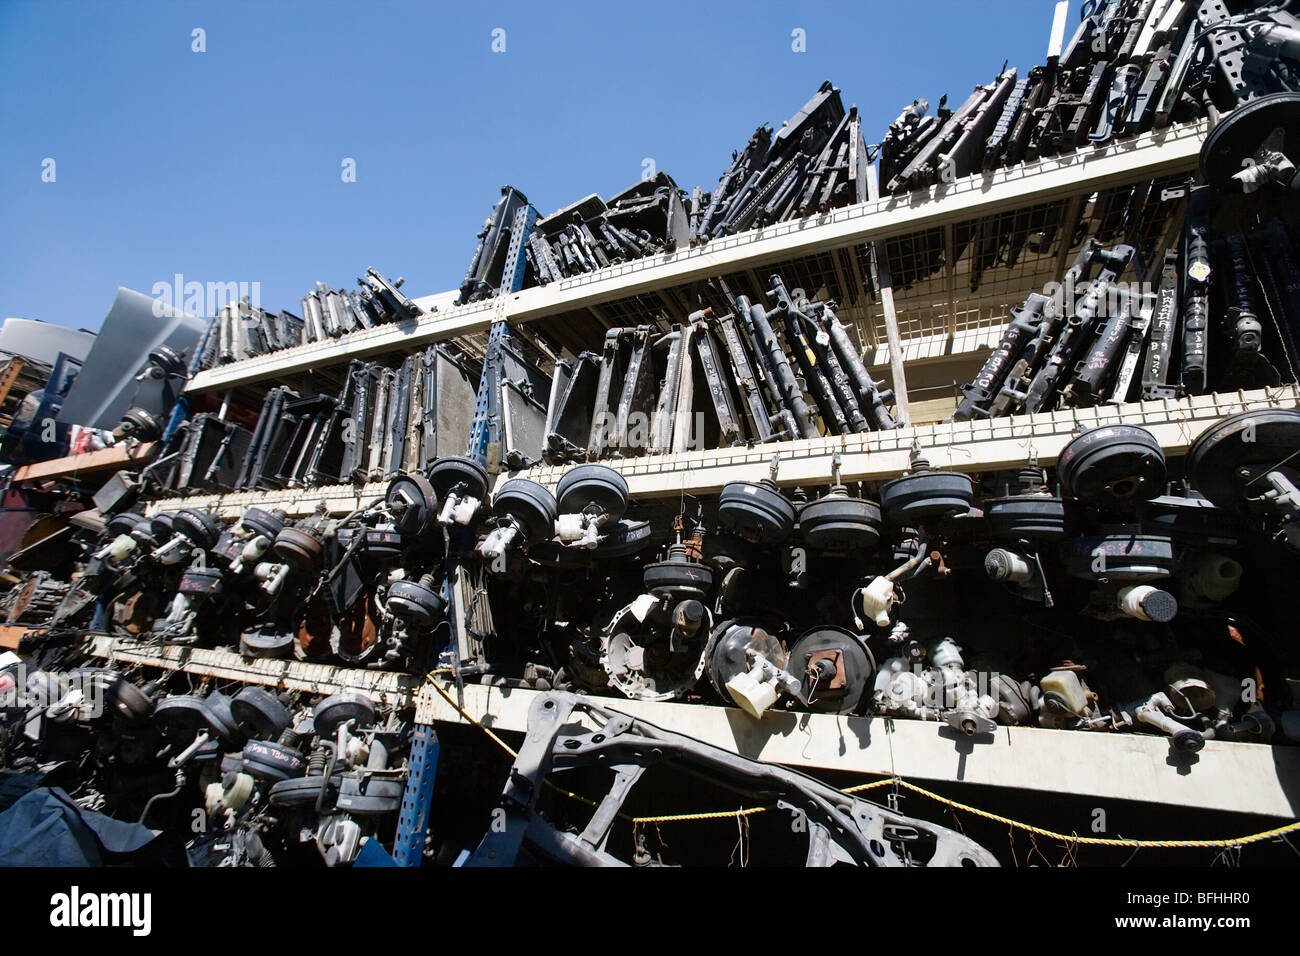 Old car parts in junkyard Stock Photo: 26817364 - Alamy